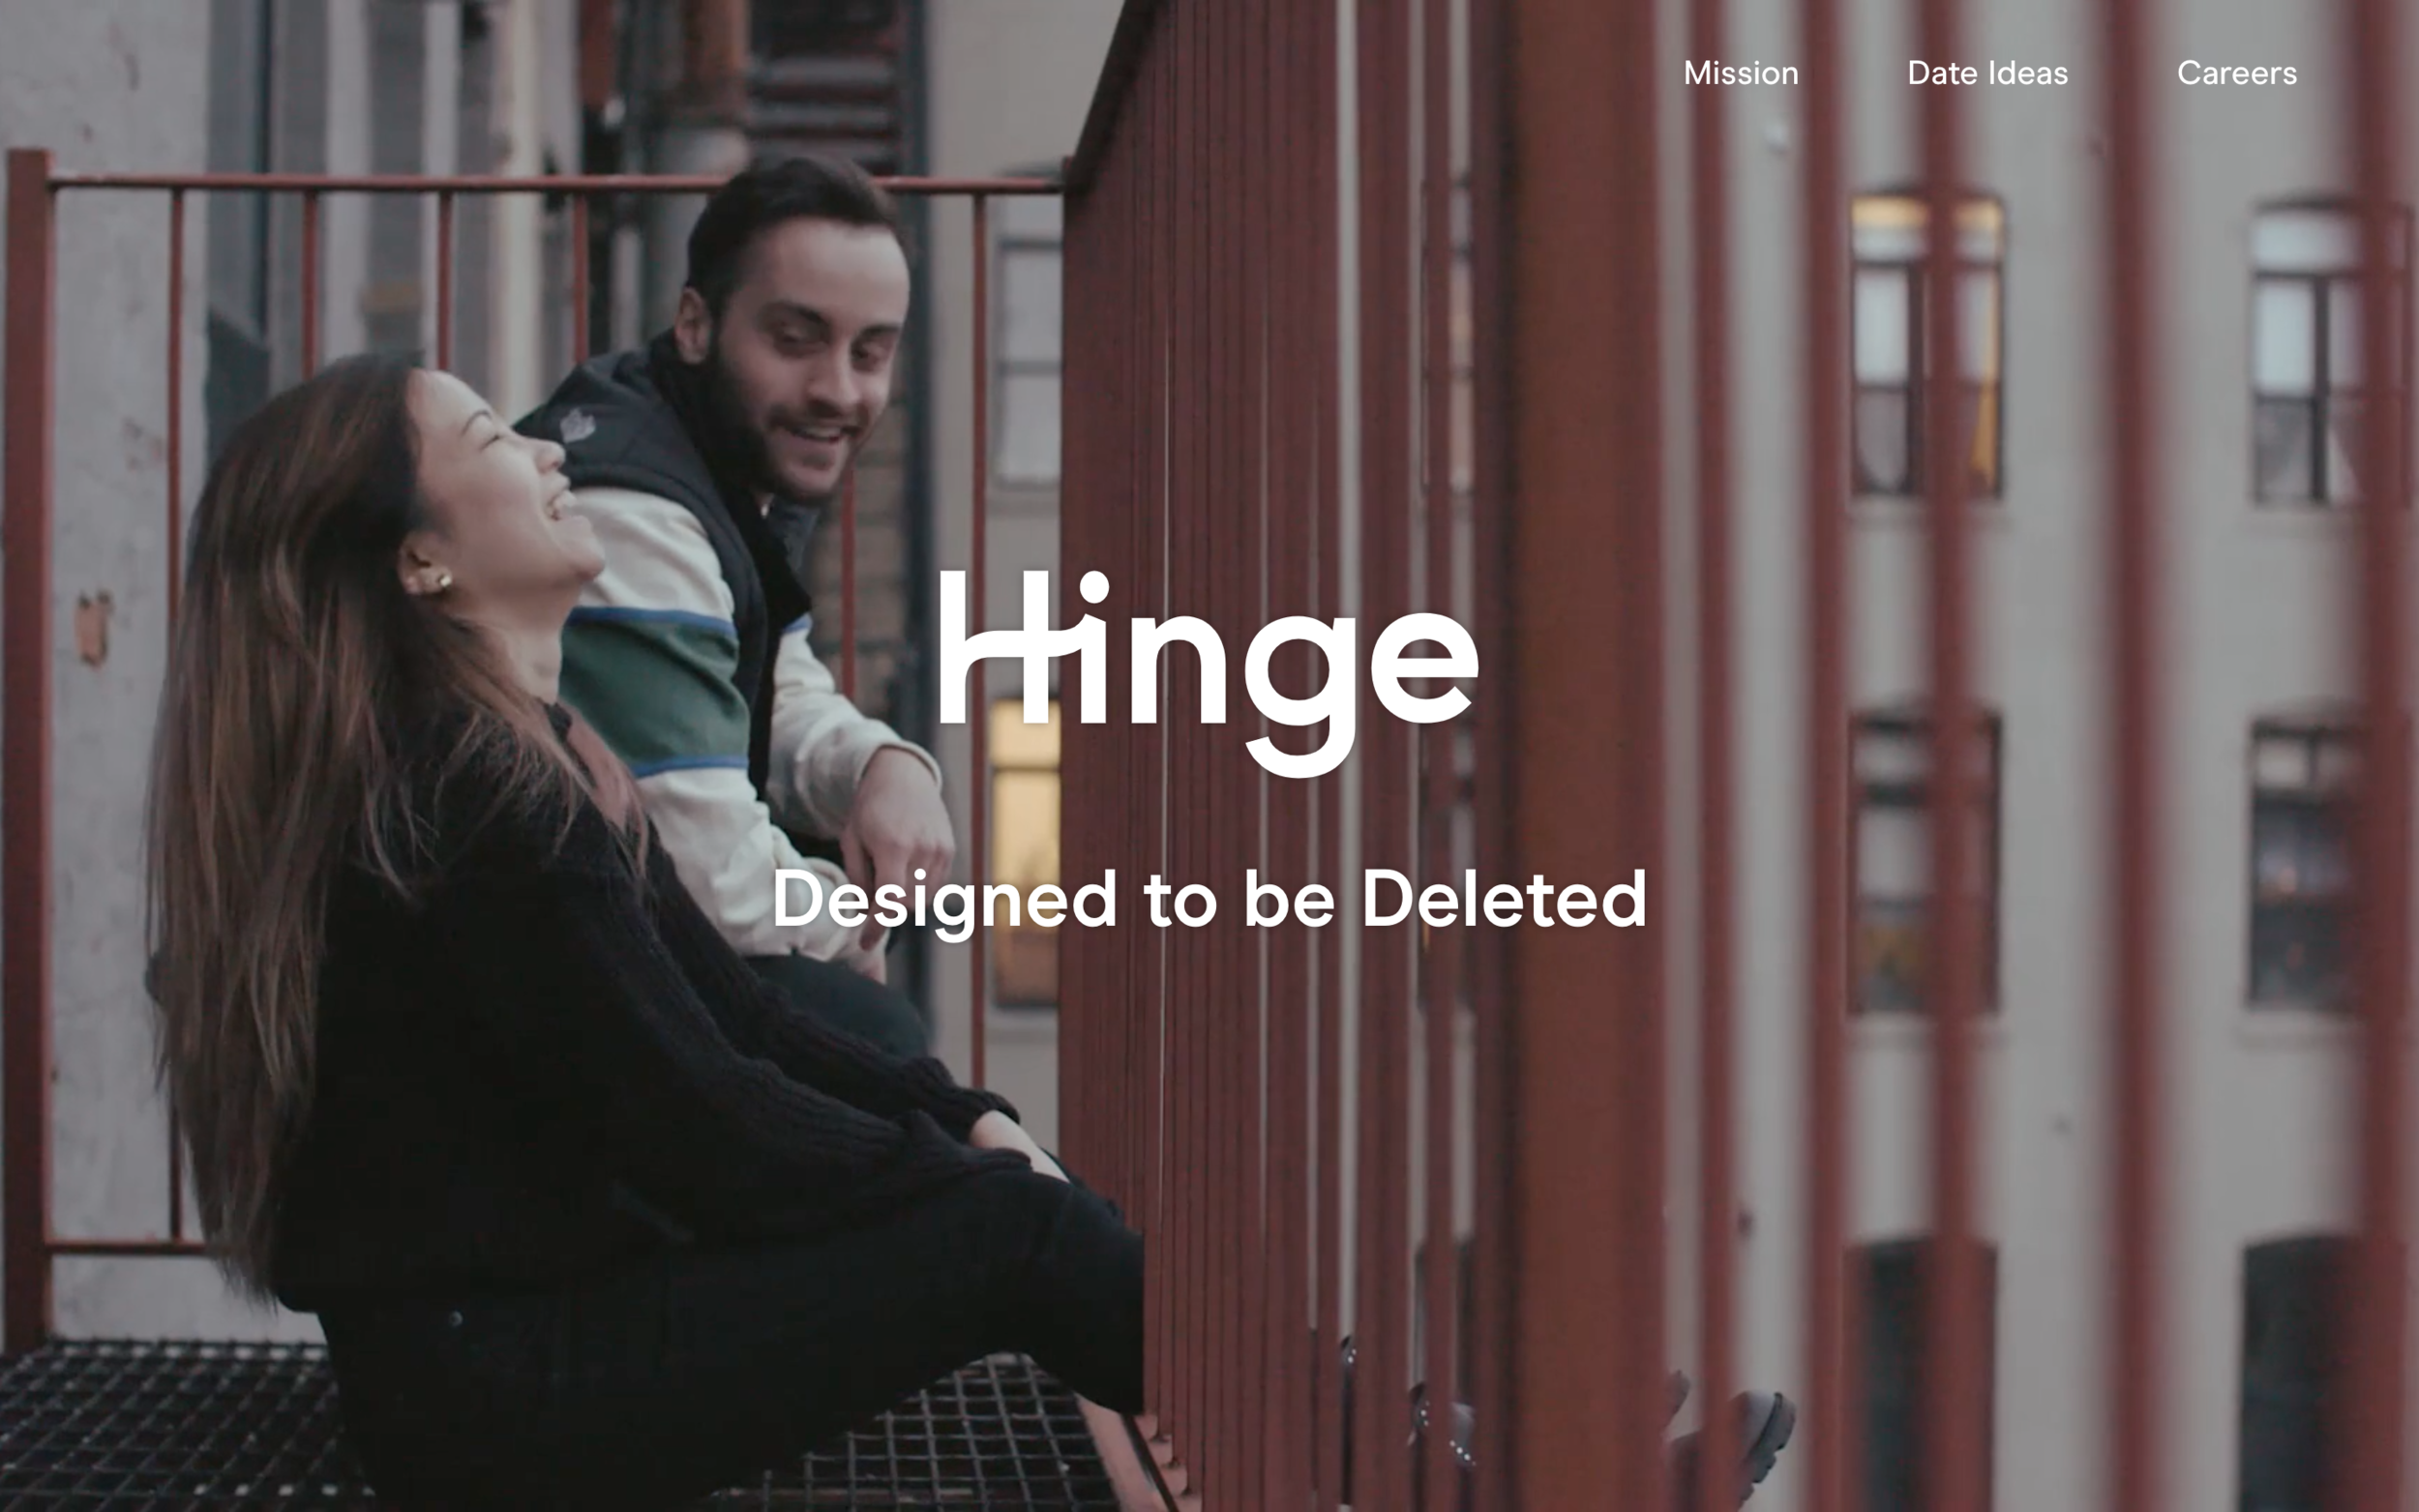 Website and App video for dating app, Hinge. Shot & edited by Sara Laufer.